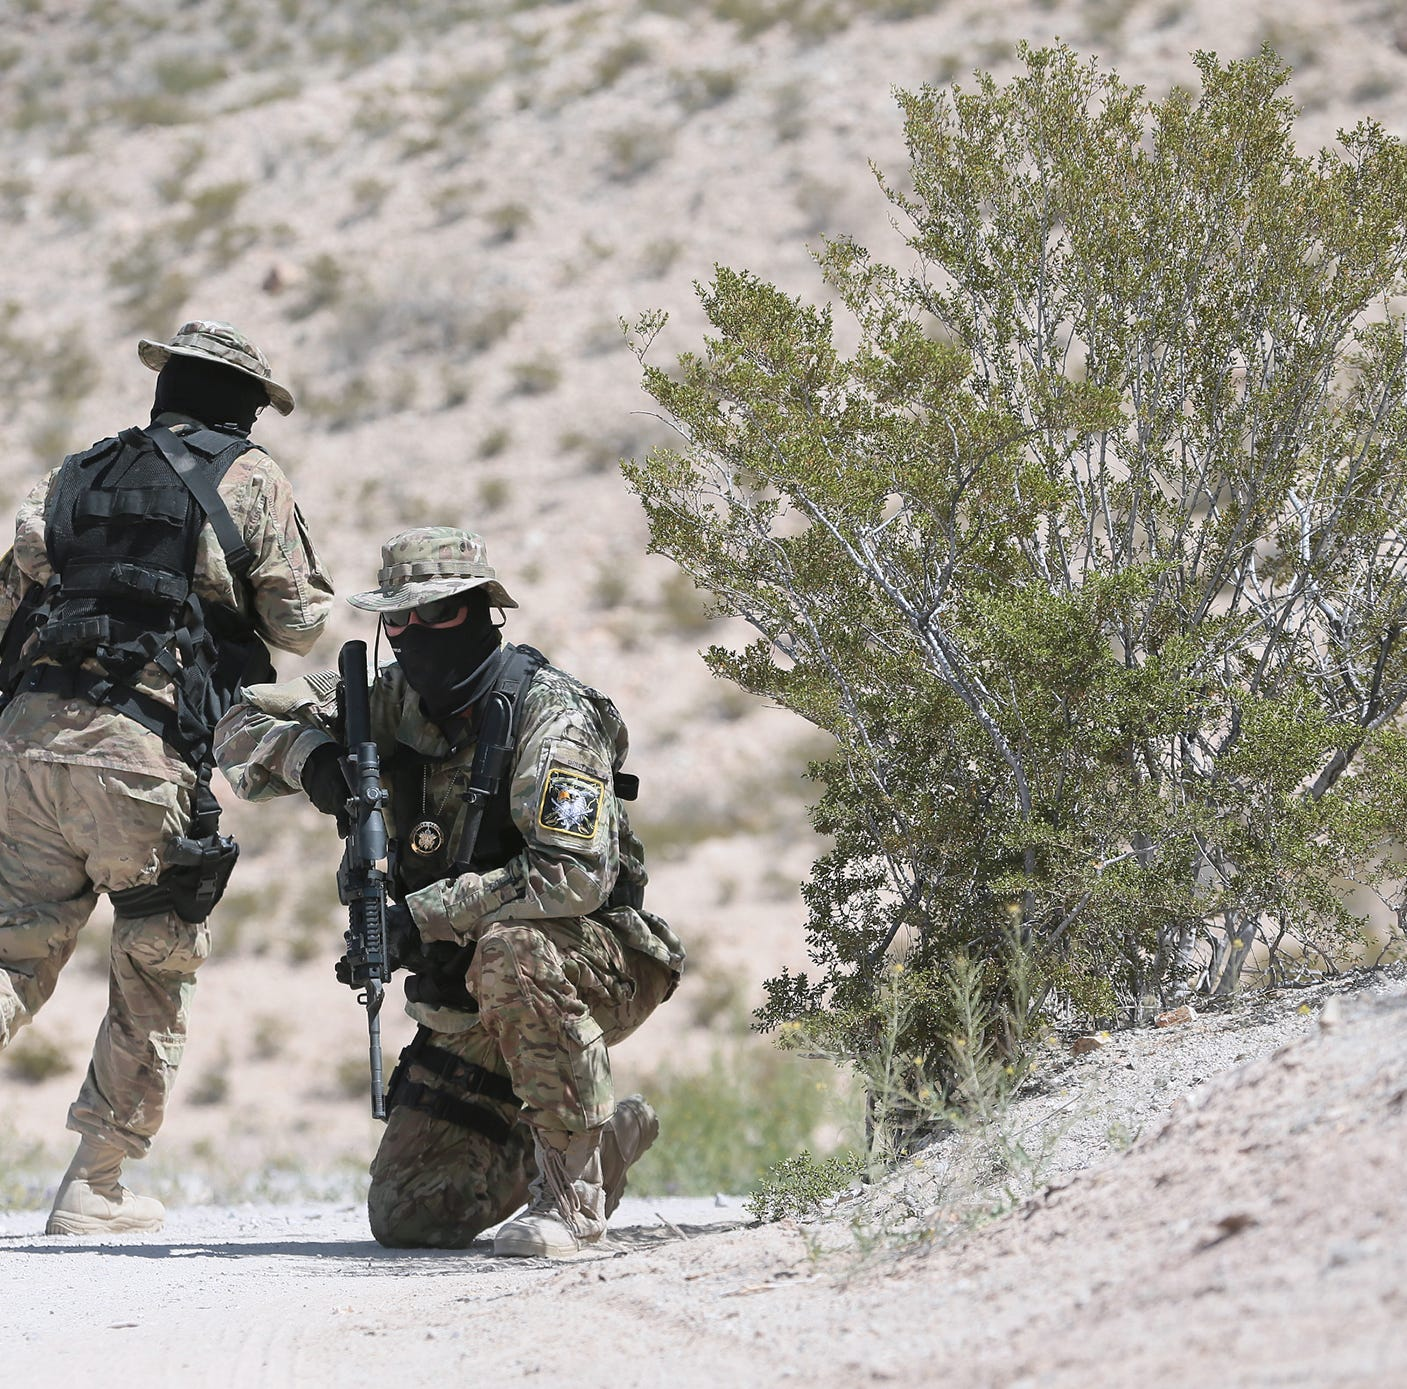 Leader of armed group patrolling border in New Mexico to stop migrants arrested by FBI